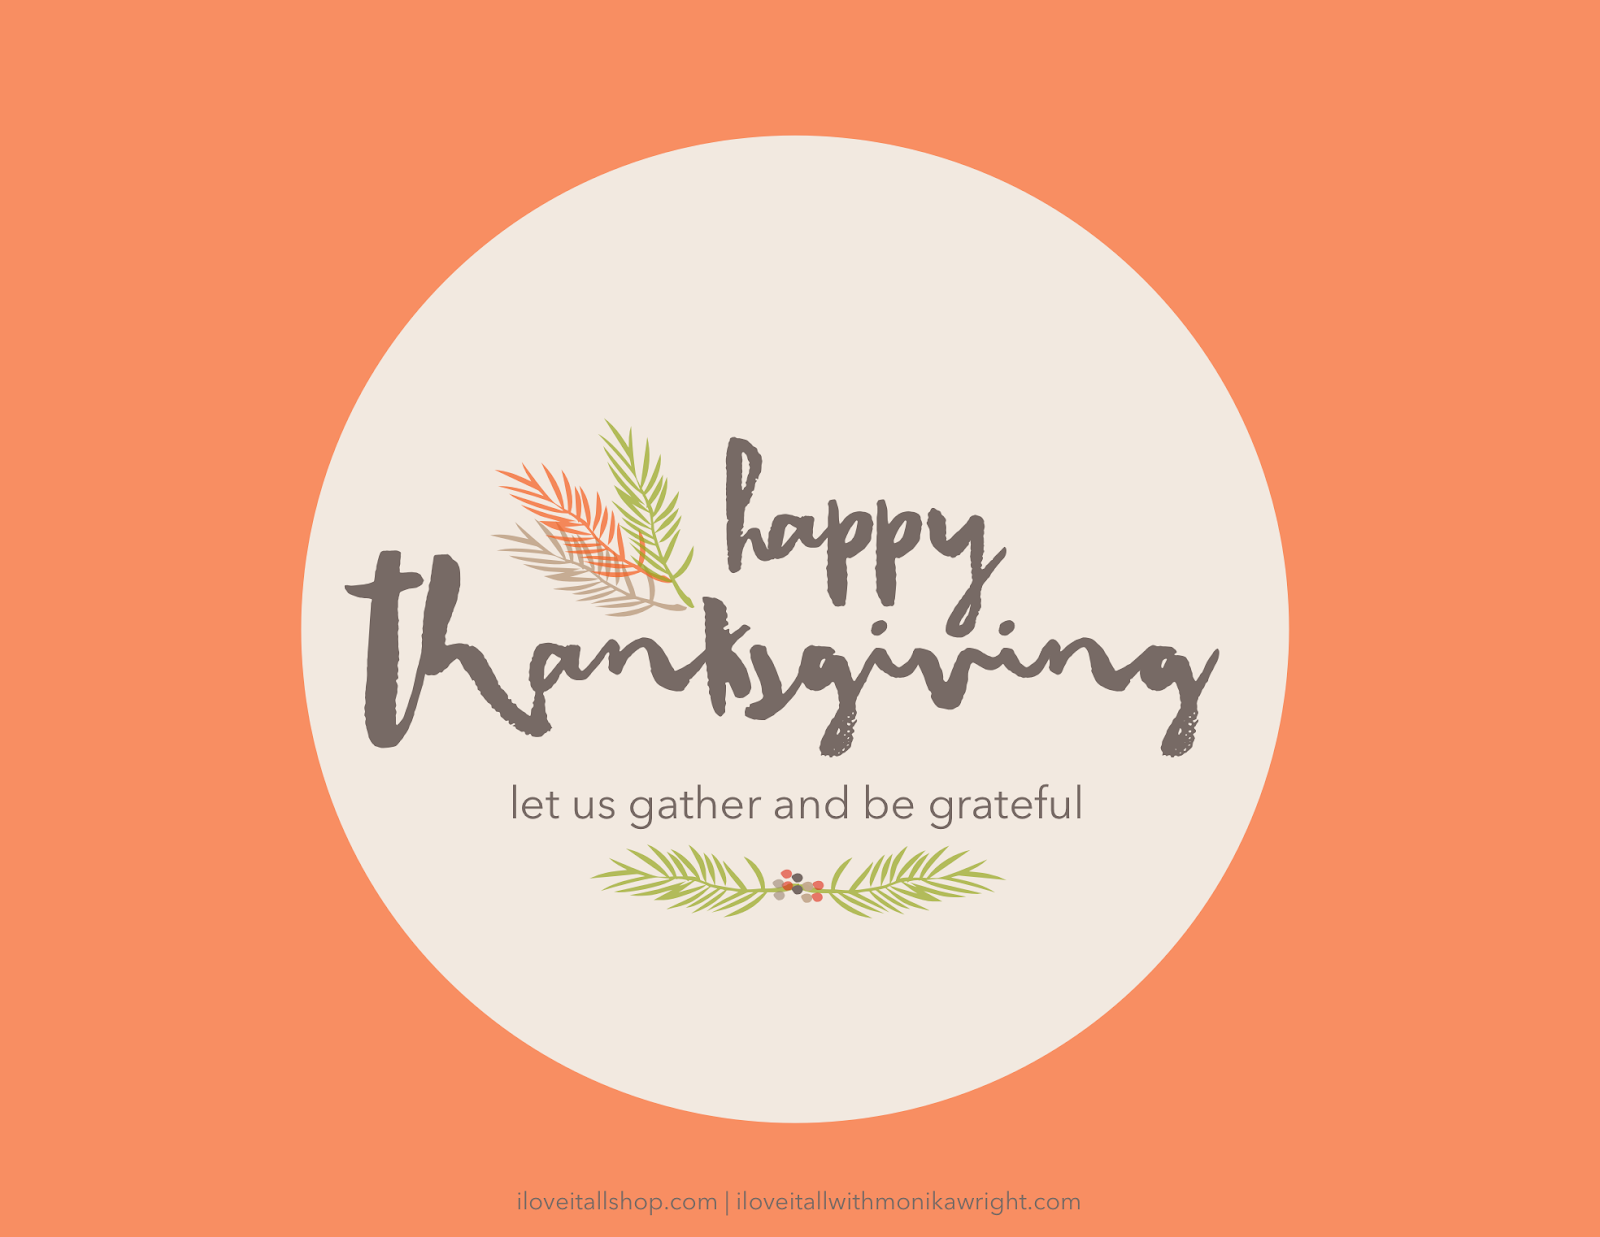 #gather #let us gather #thanksgiving #happy thanksgiving #be grateful #gratitude #grateful  #free download